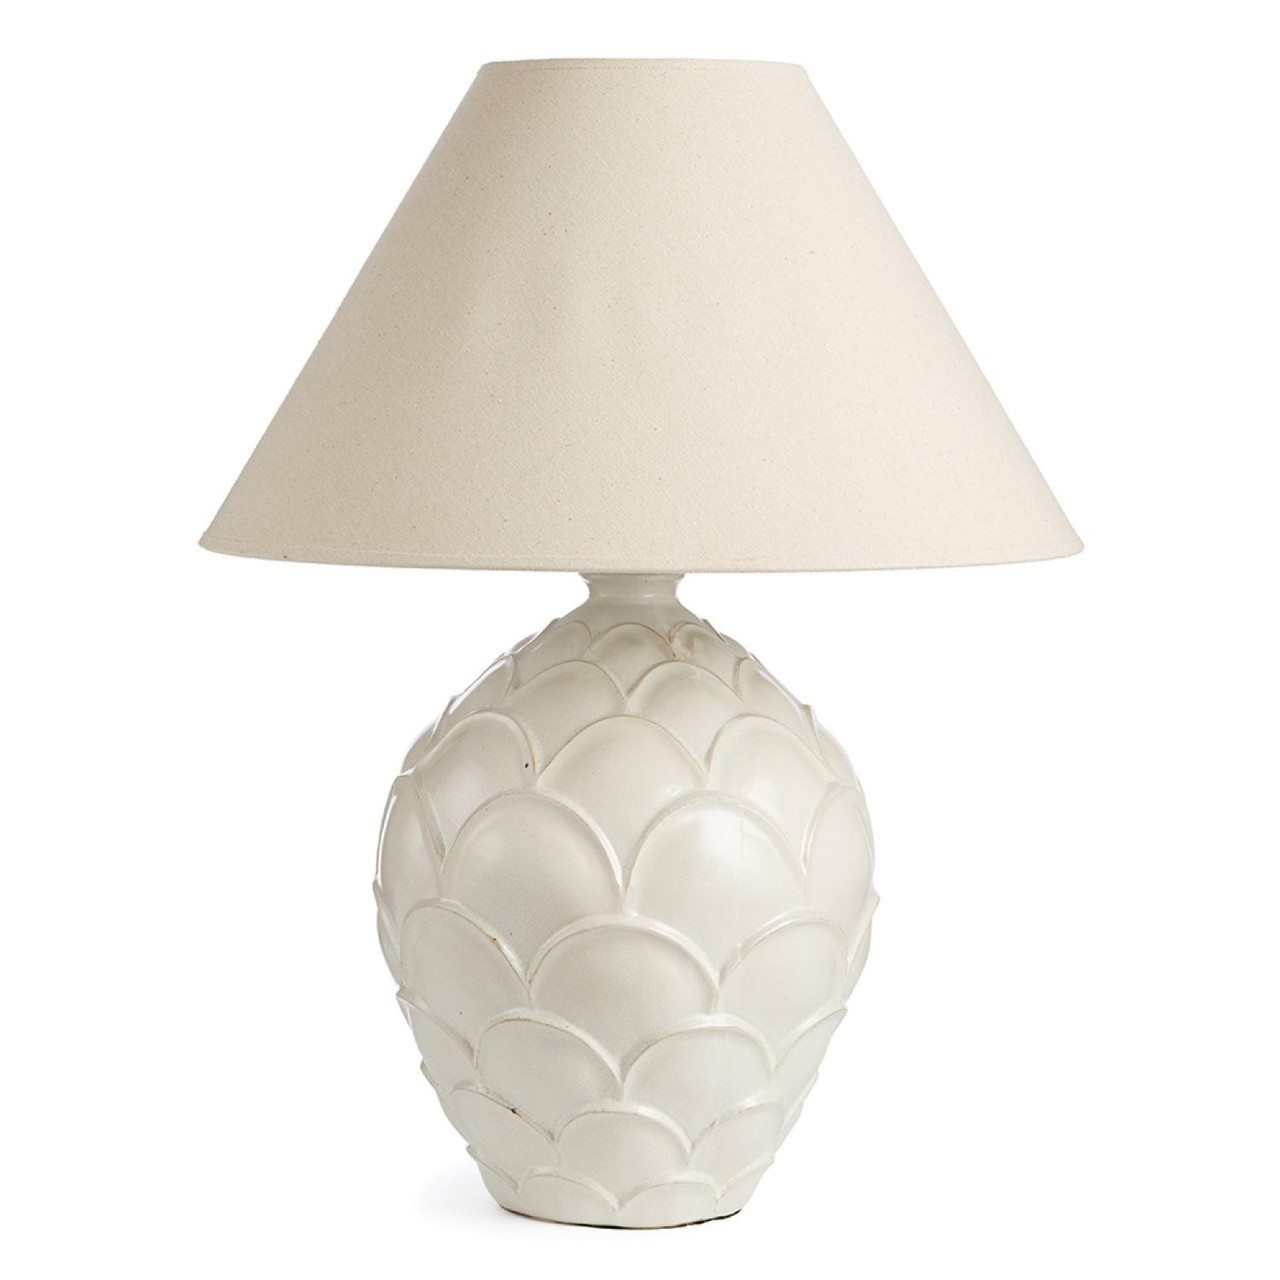 28 5 White On White Scallop Base Table Lamp With Round Tapered